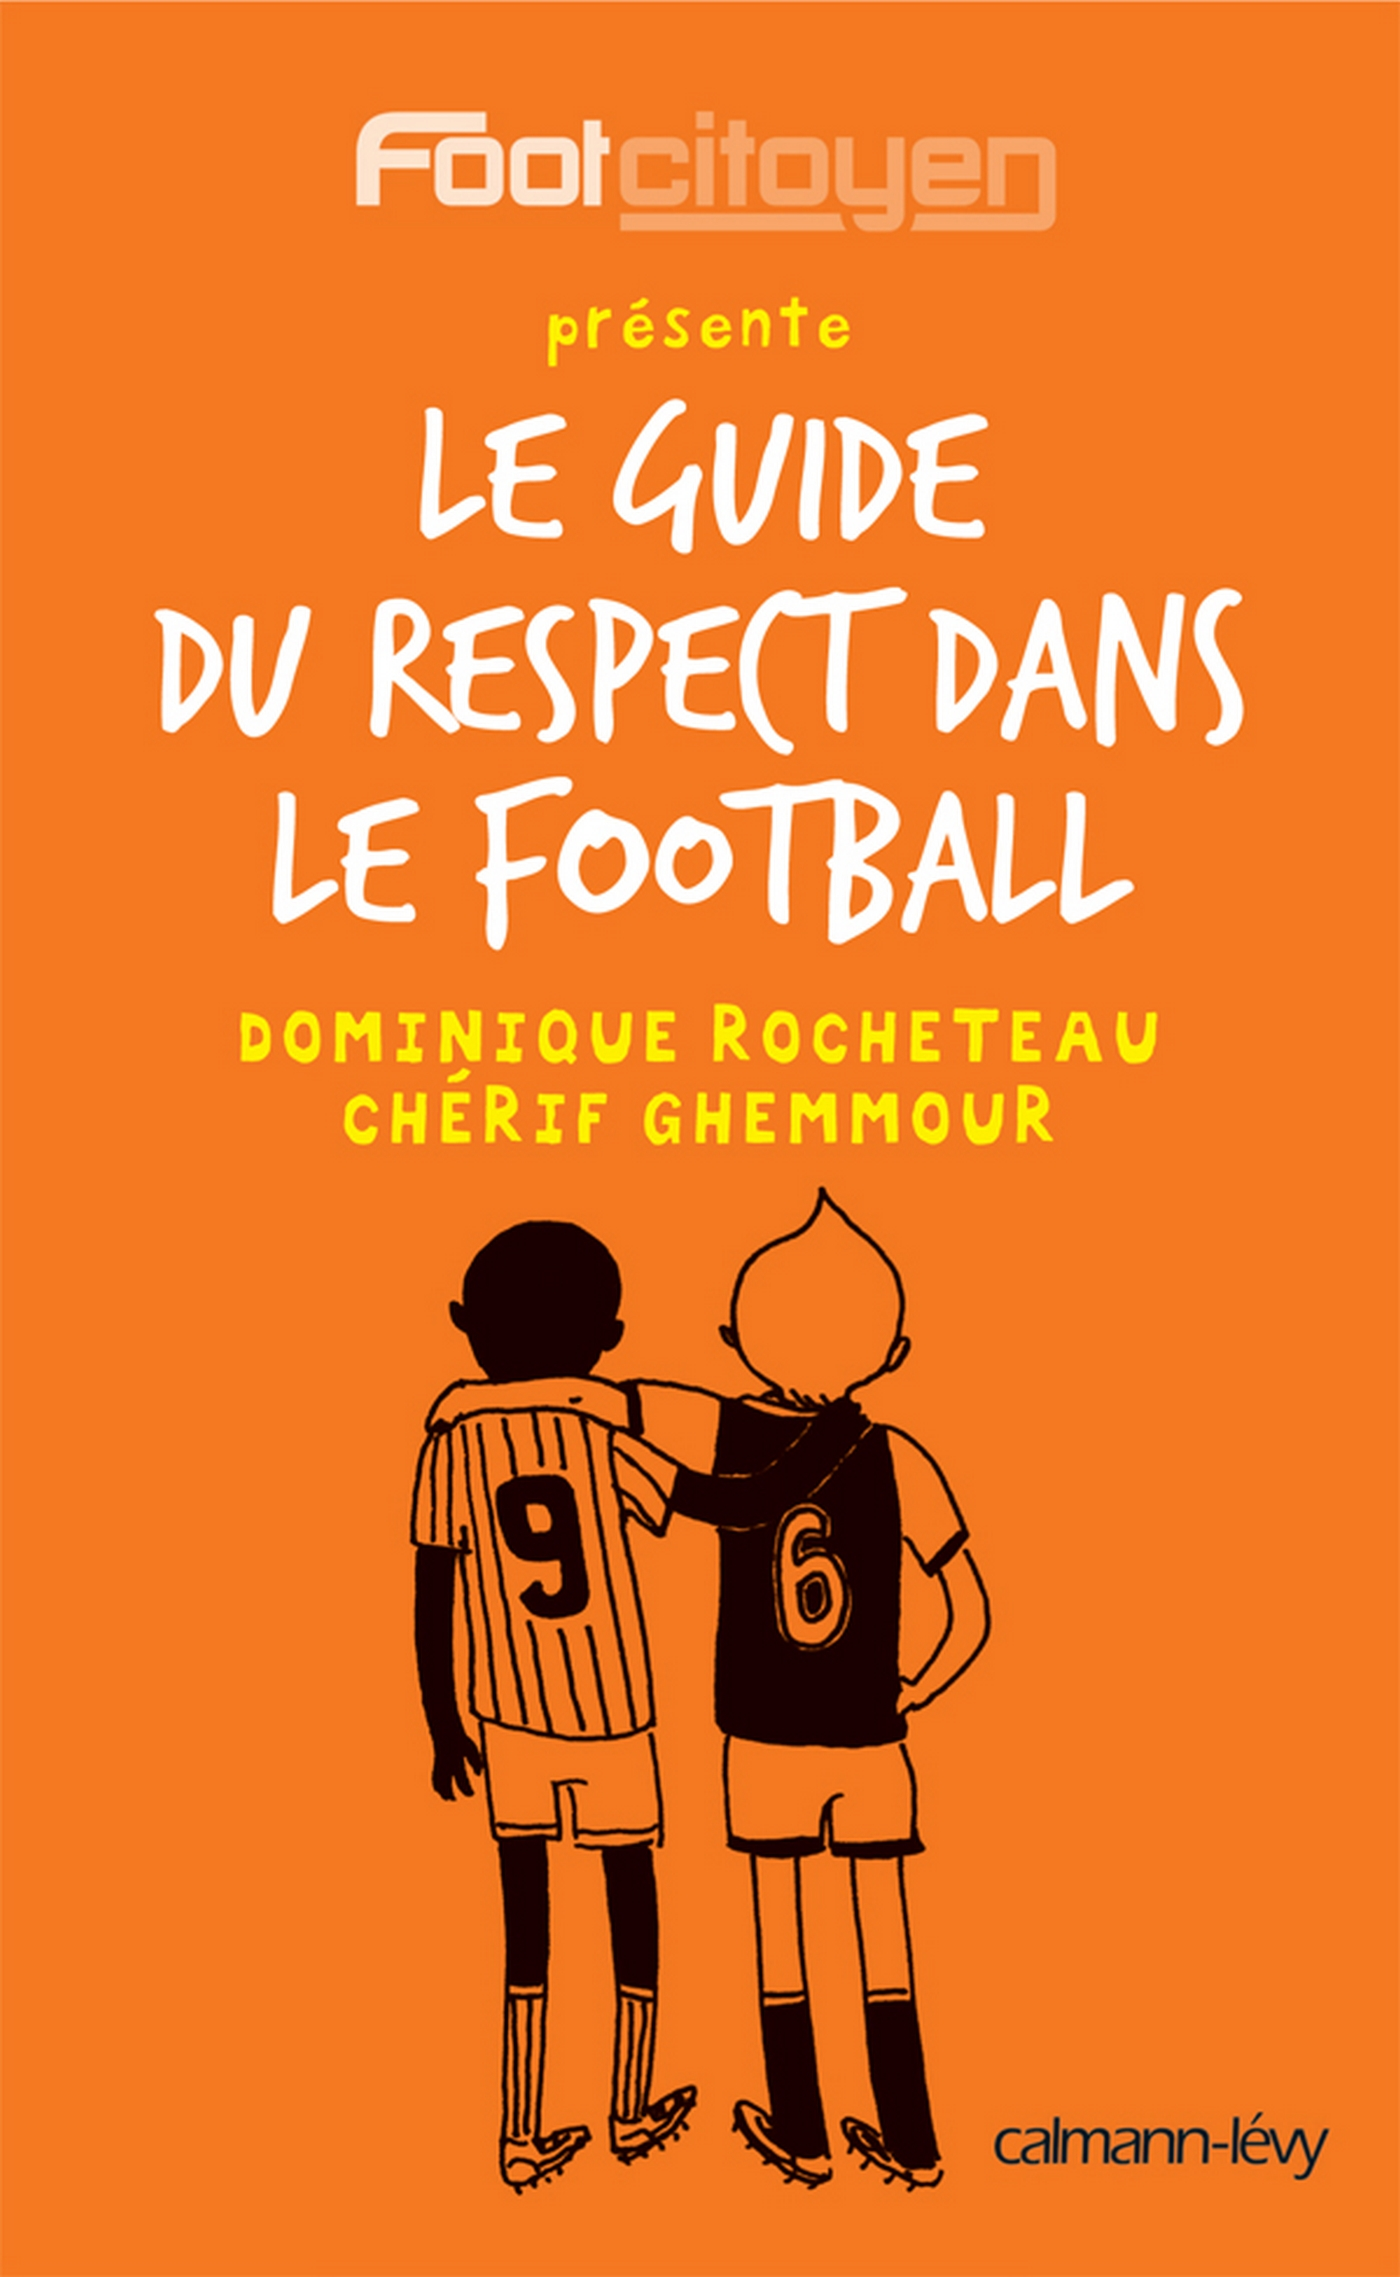 Le Guide du respect dans le football